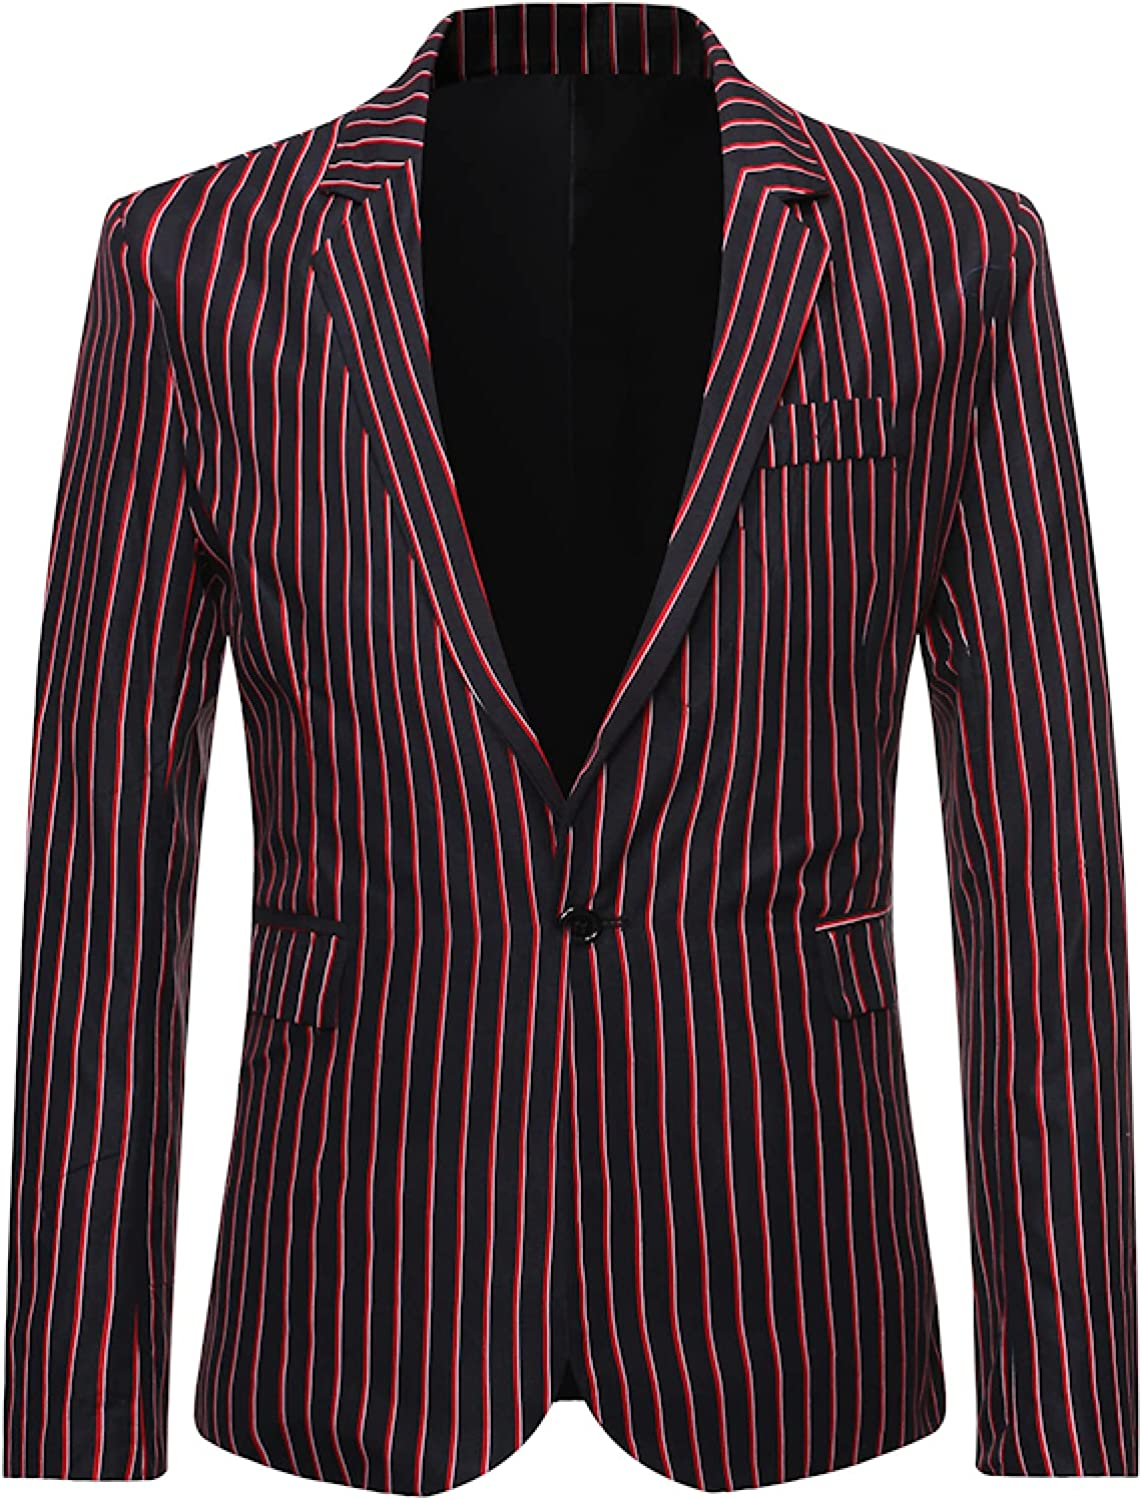 Men's Check Blazer Solid Color Single Breasted Business Wedding Dressfor Wedding Party Celebration